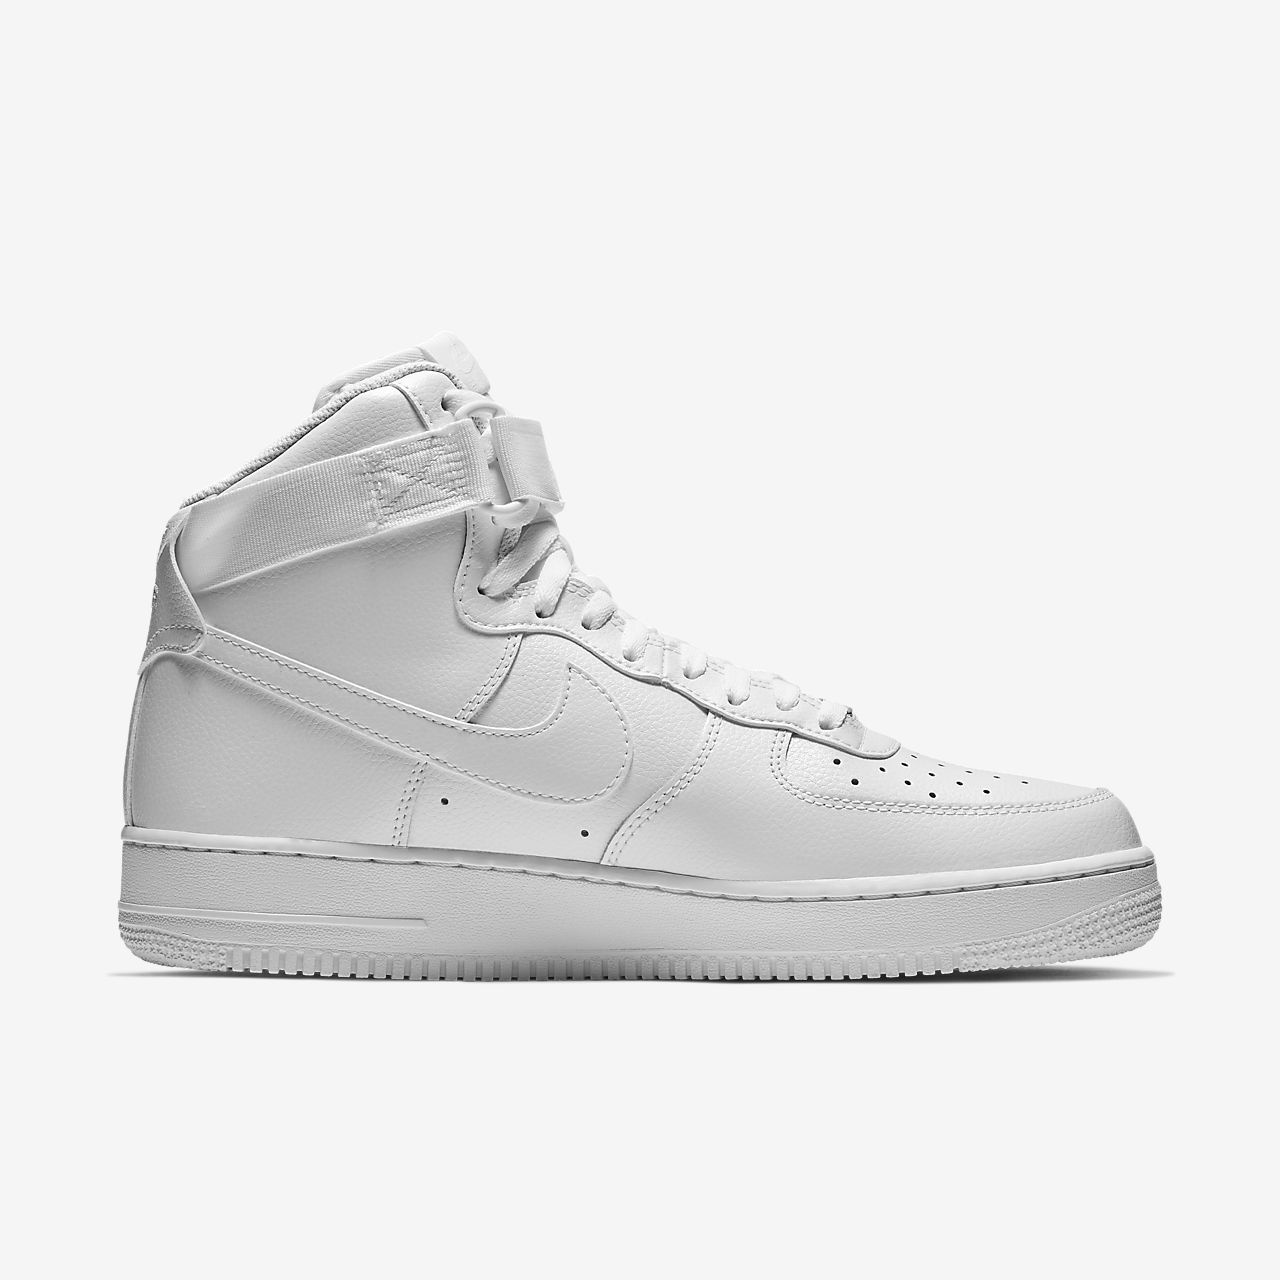 Nike Shoes Air Force High Tops